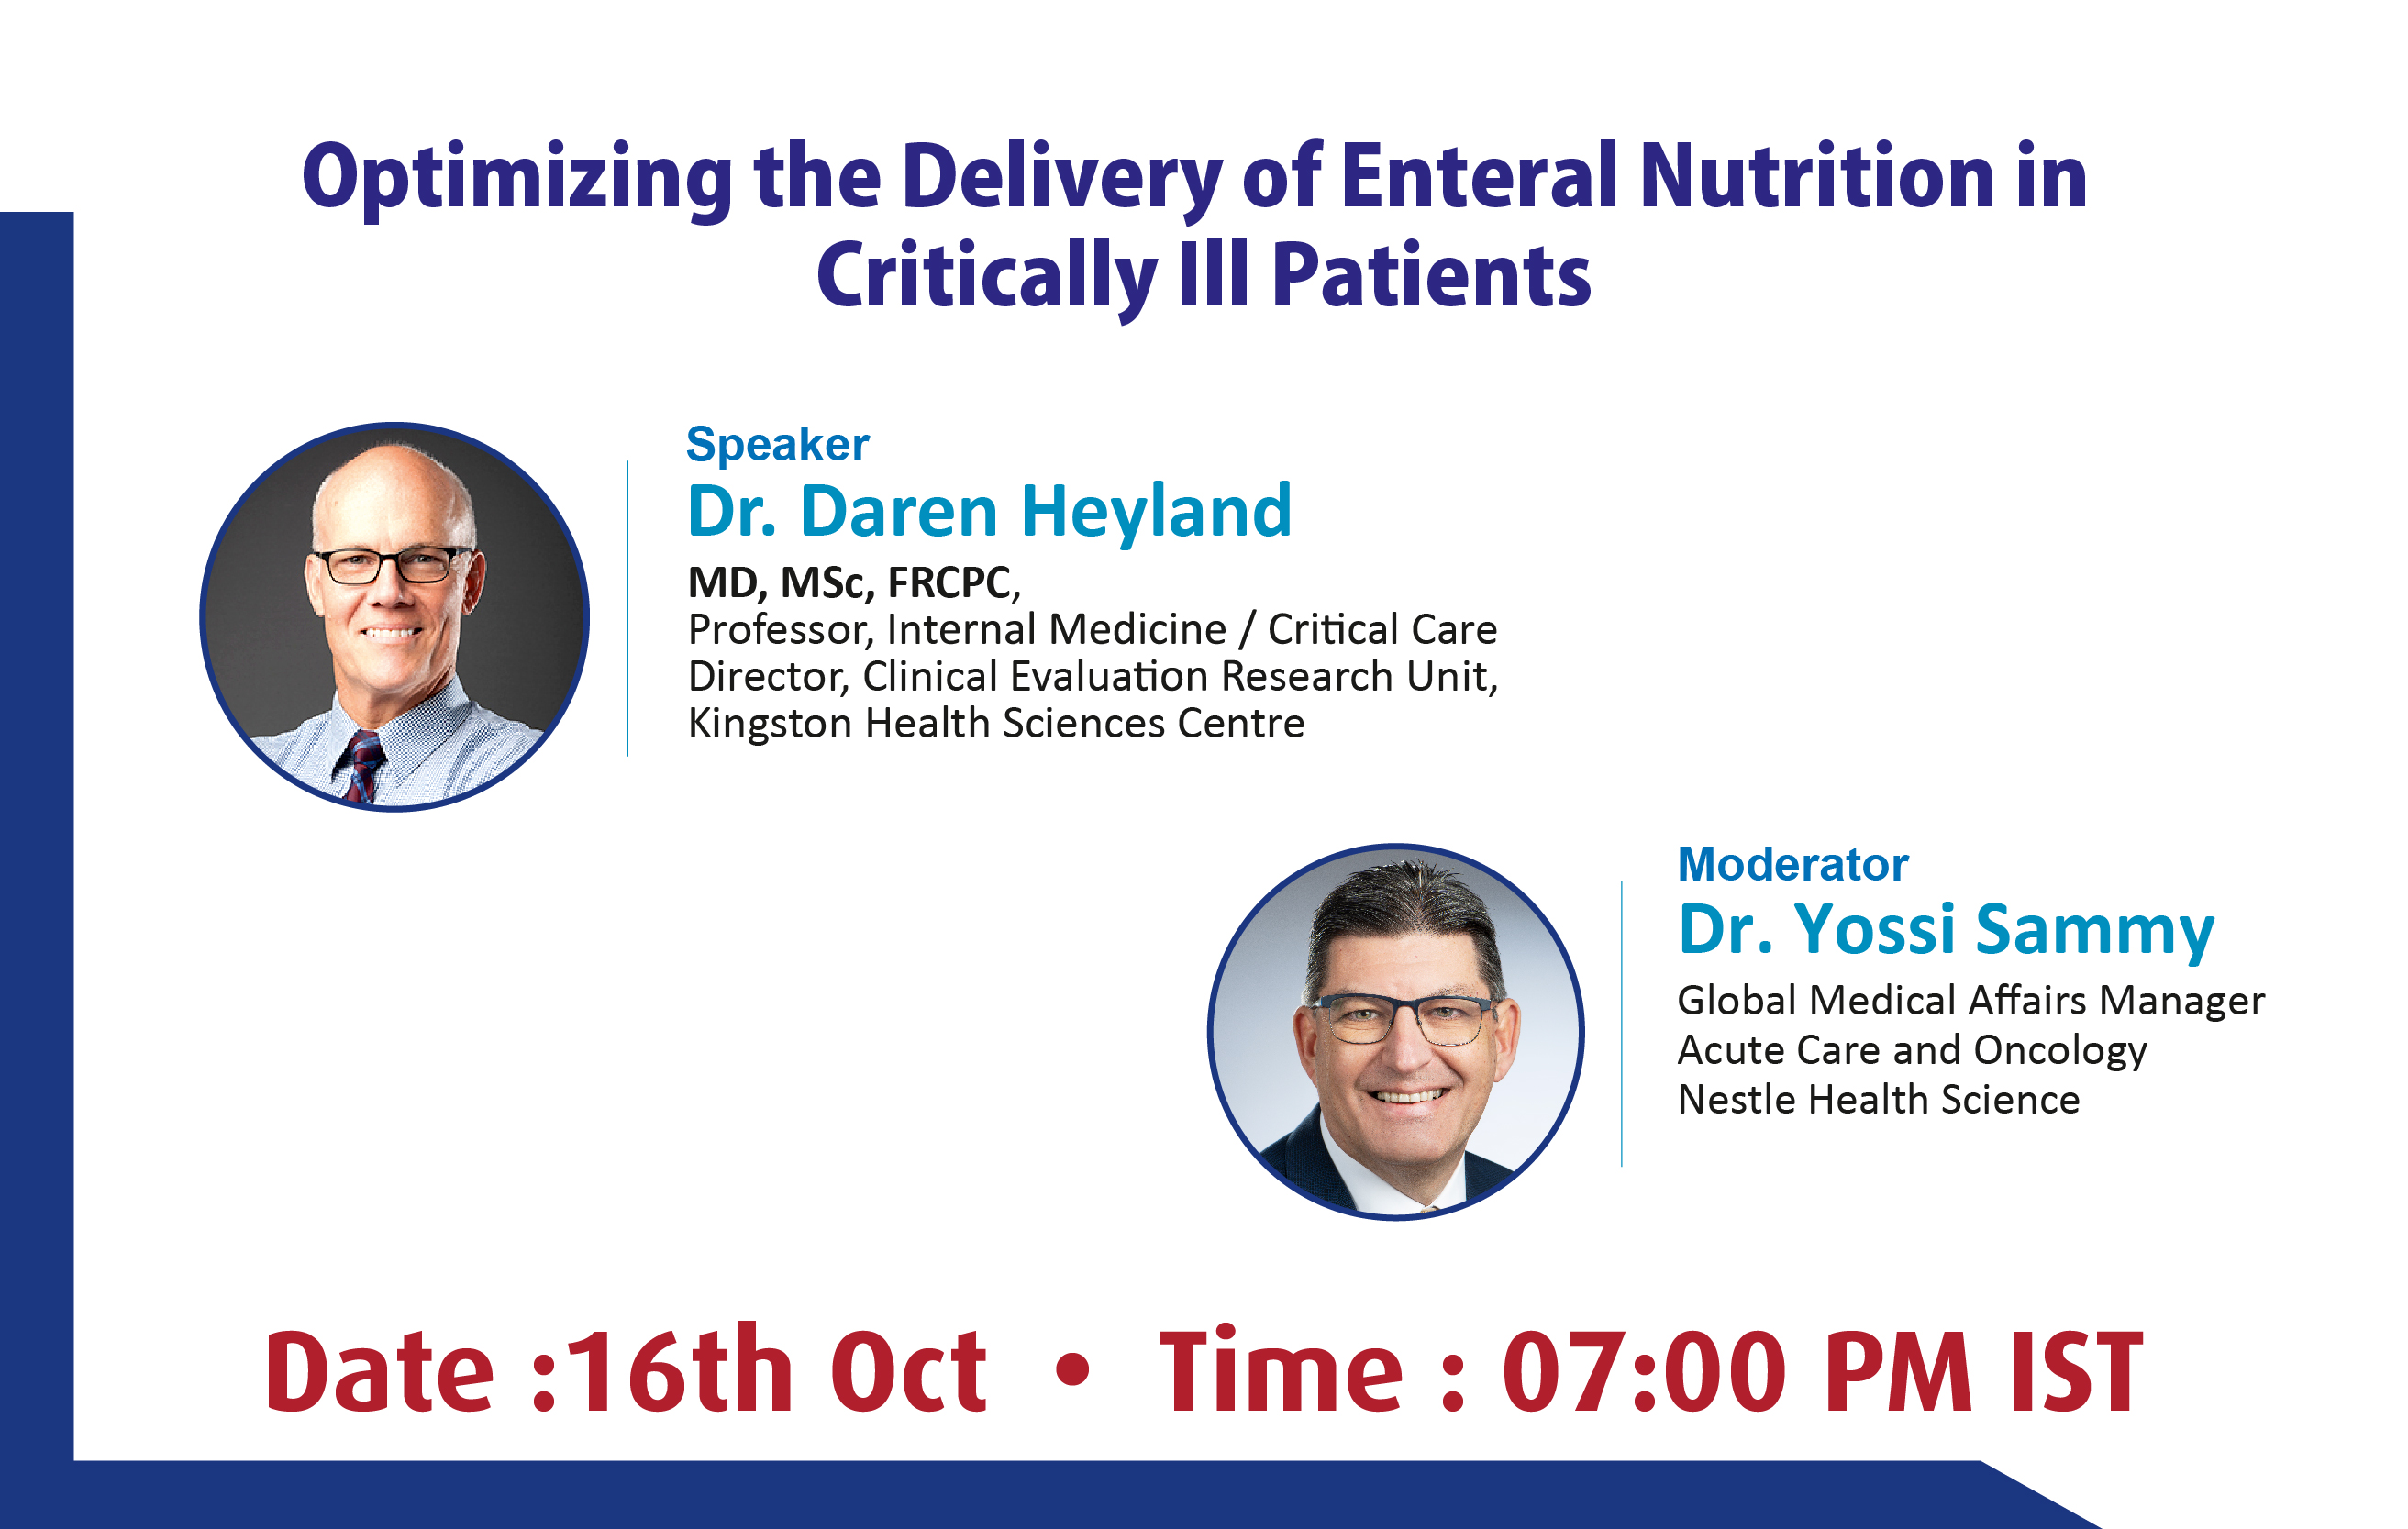 Optimizing the Delivery of Enteral Nutrition in  Critically ill Patients